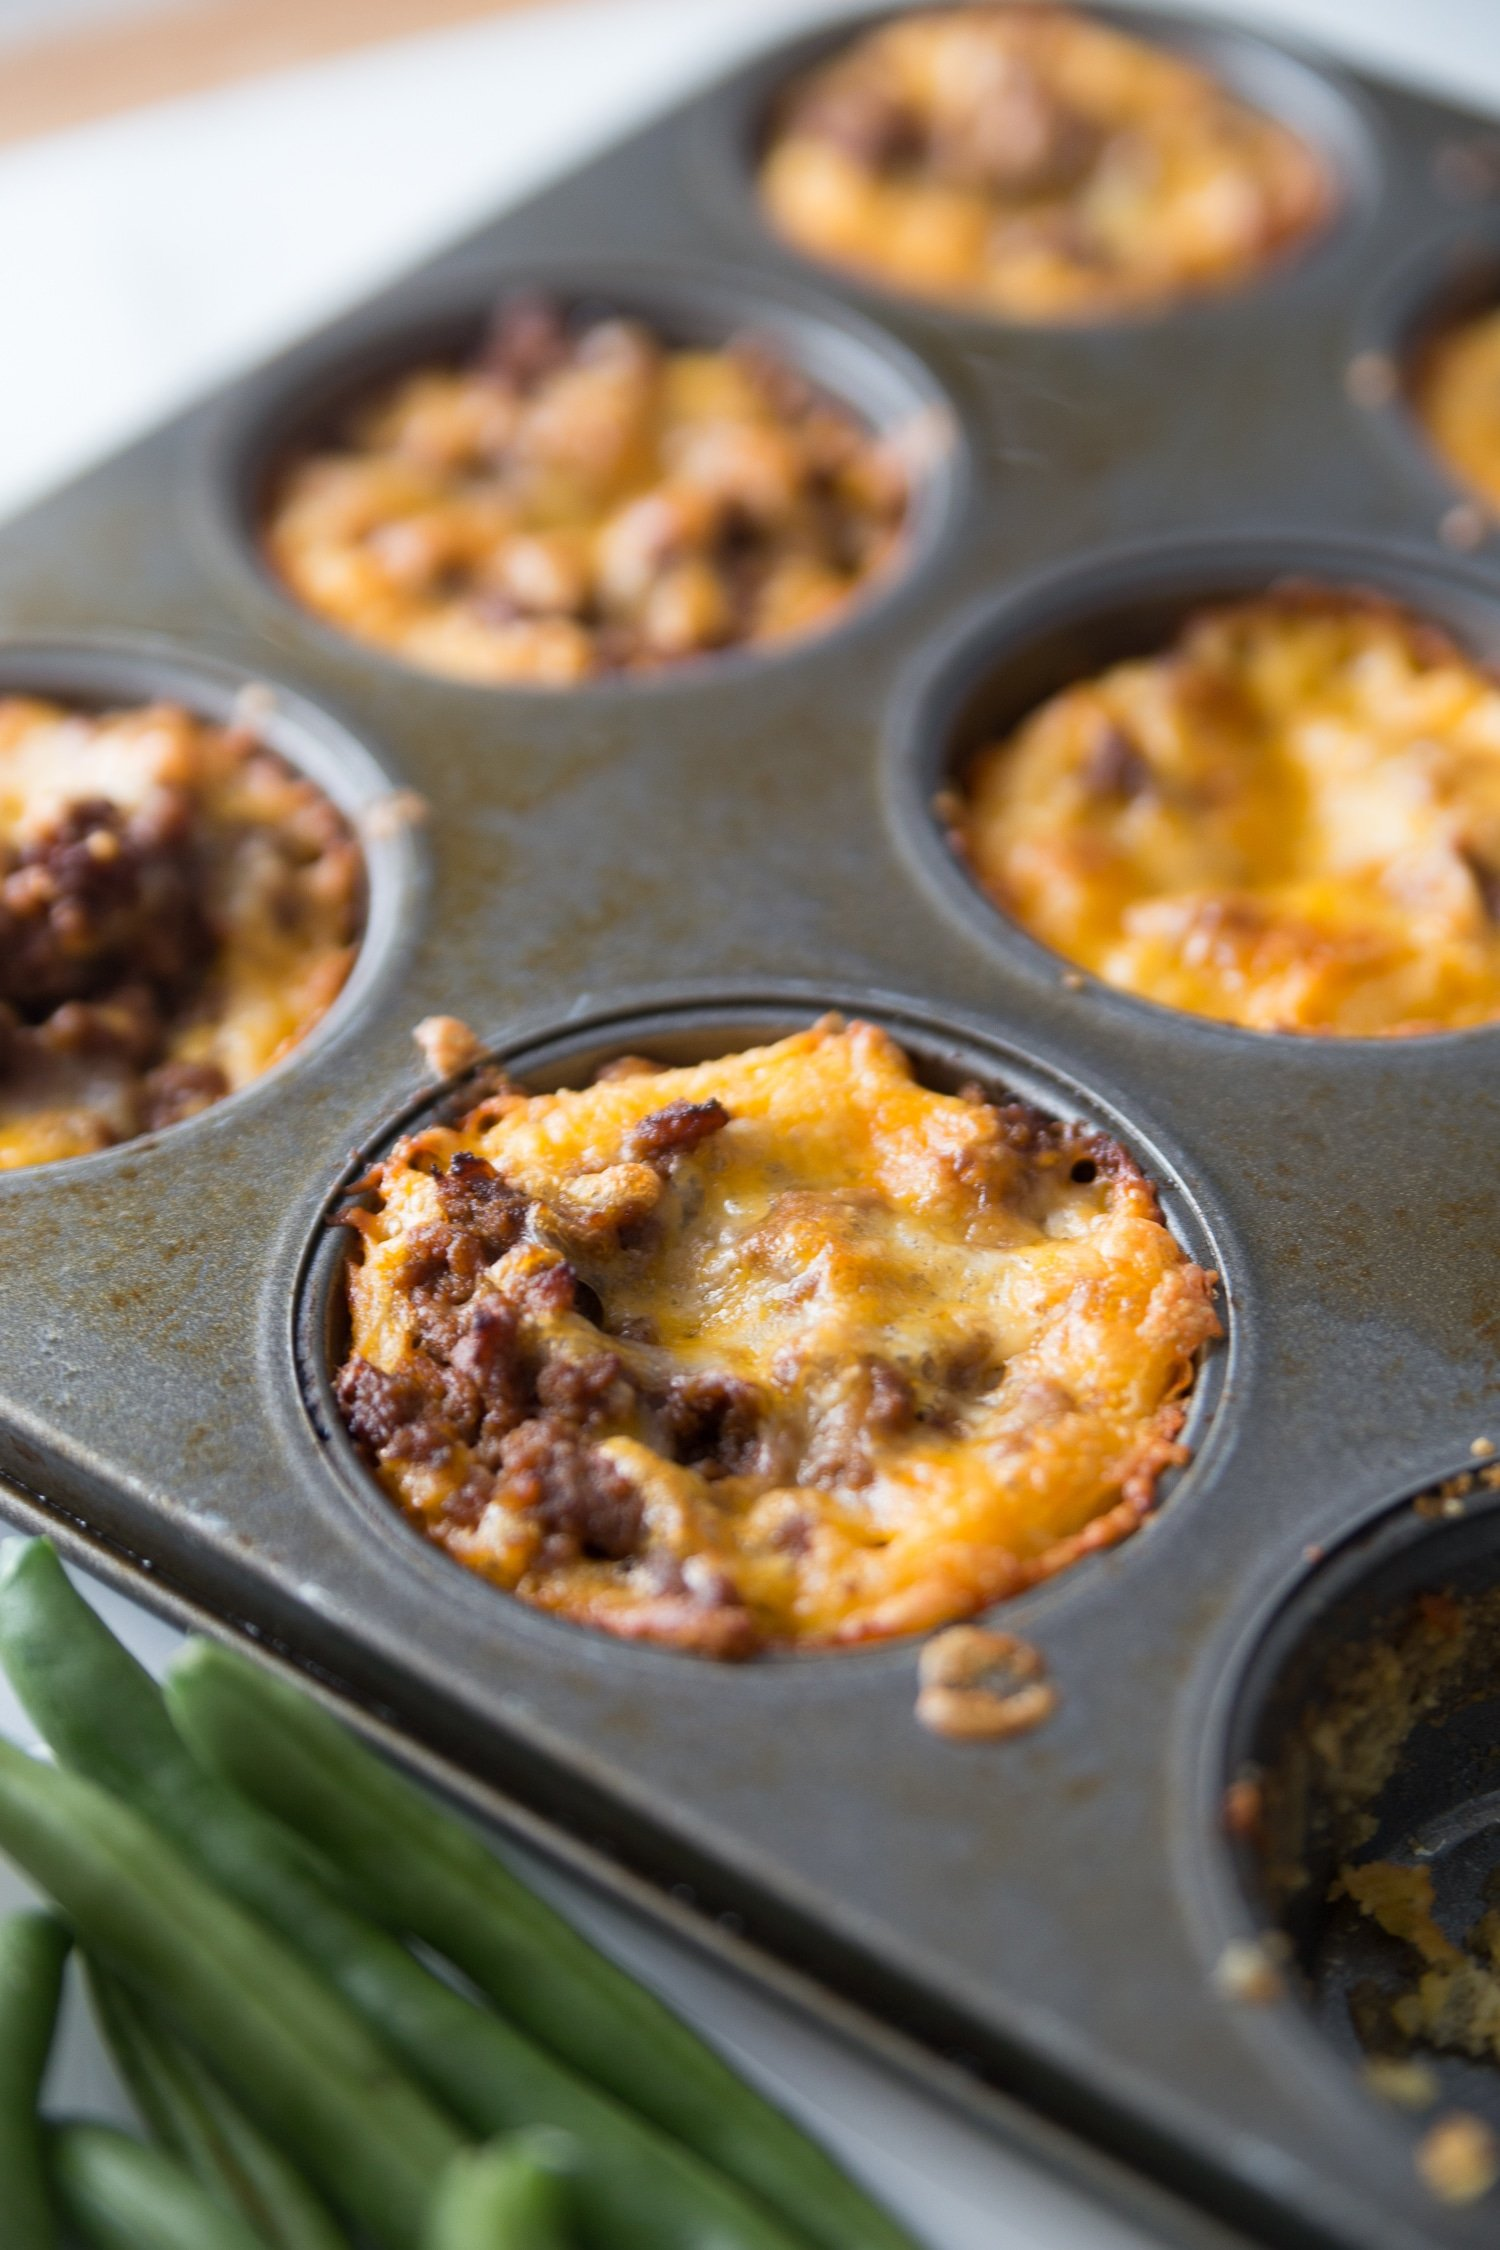 Farmhouse BBQ Low Carb Muffin Cups are loaded with tangy sugar-free low carb bbq sauce and cheesy goodness for an easy and delicious keto dinner idea. #keto #lowcarb